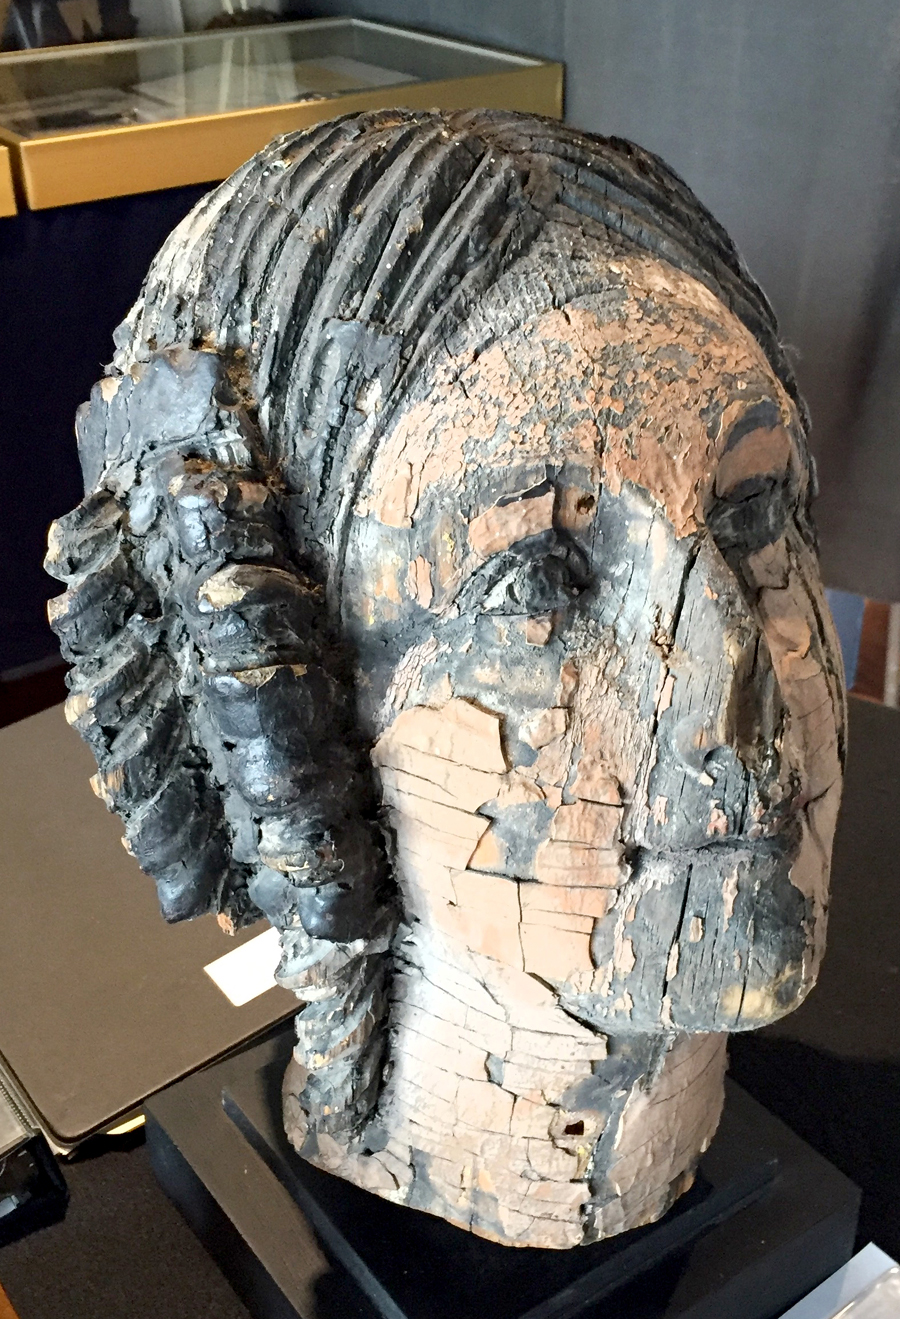 Ryan Cooper, a Yarmouth Port, Mass., dealer known for marine sculpture, featured a figurehead fragment salvaged from the British convict ship <i>Success</i>, built in 1840 and destroyed by fire in 1946. The famous vessel toured United States ports in the early Twentieth Century.